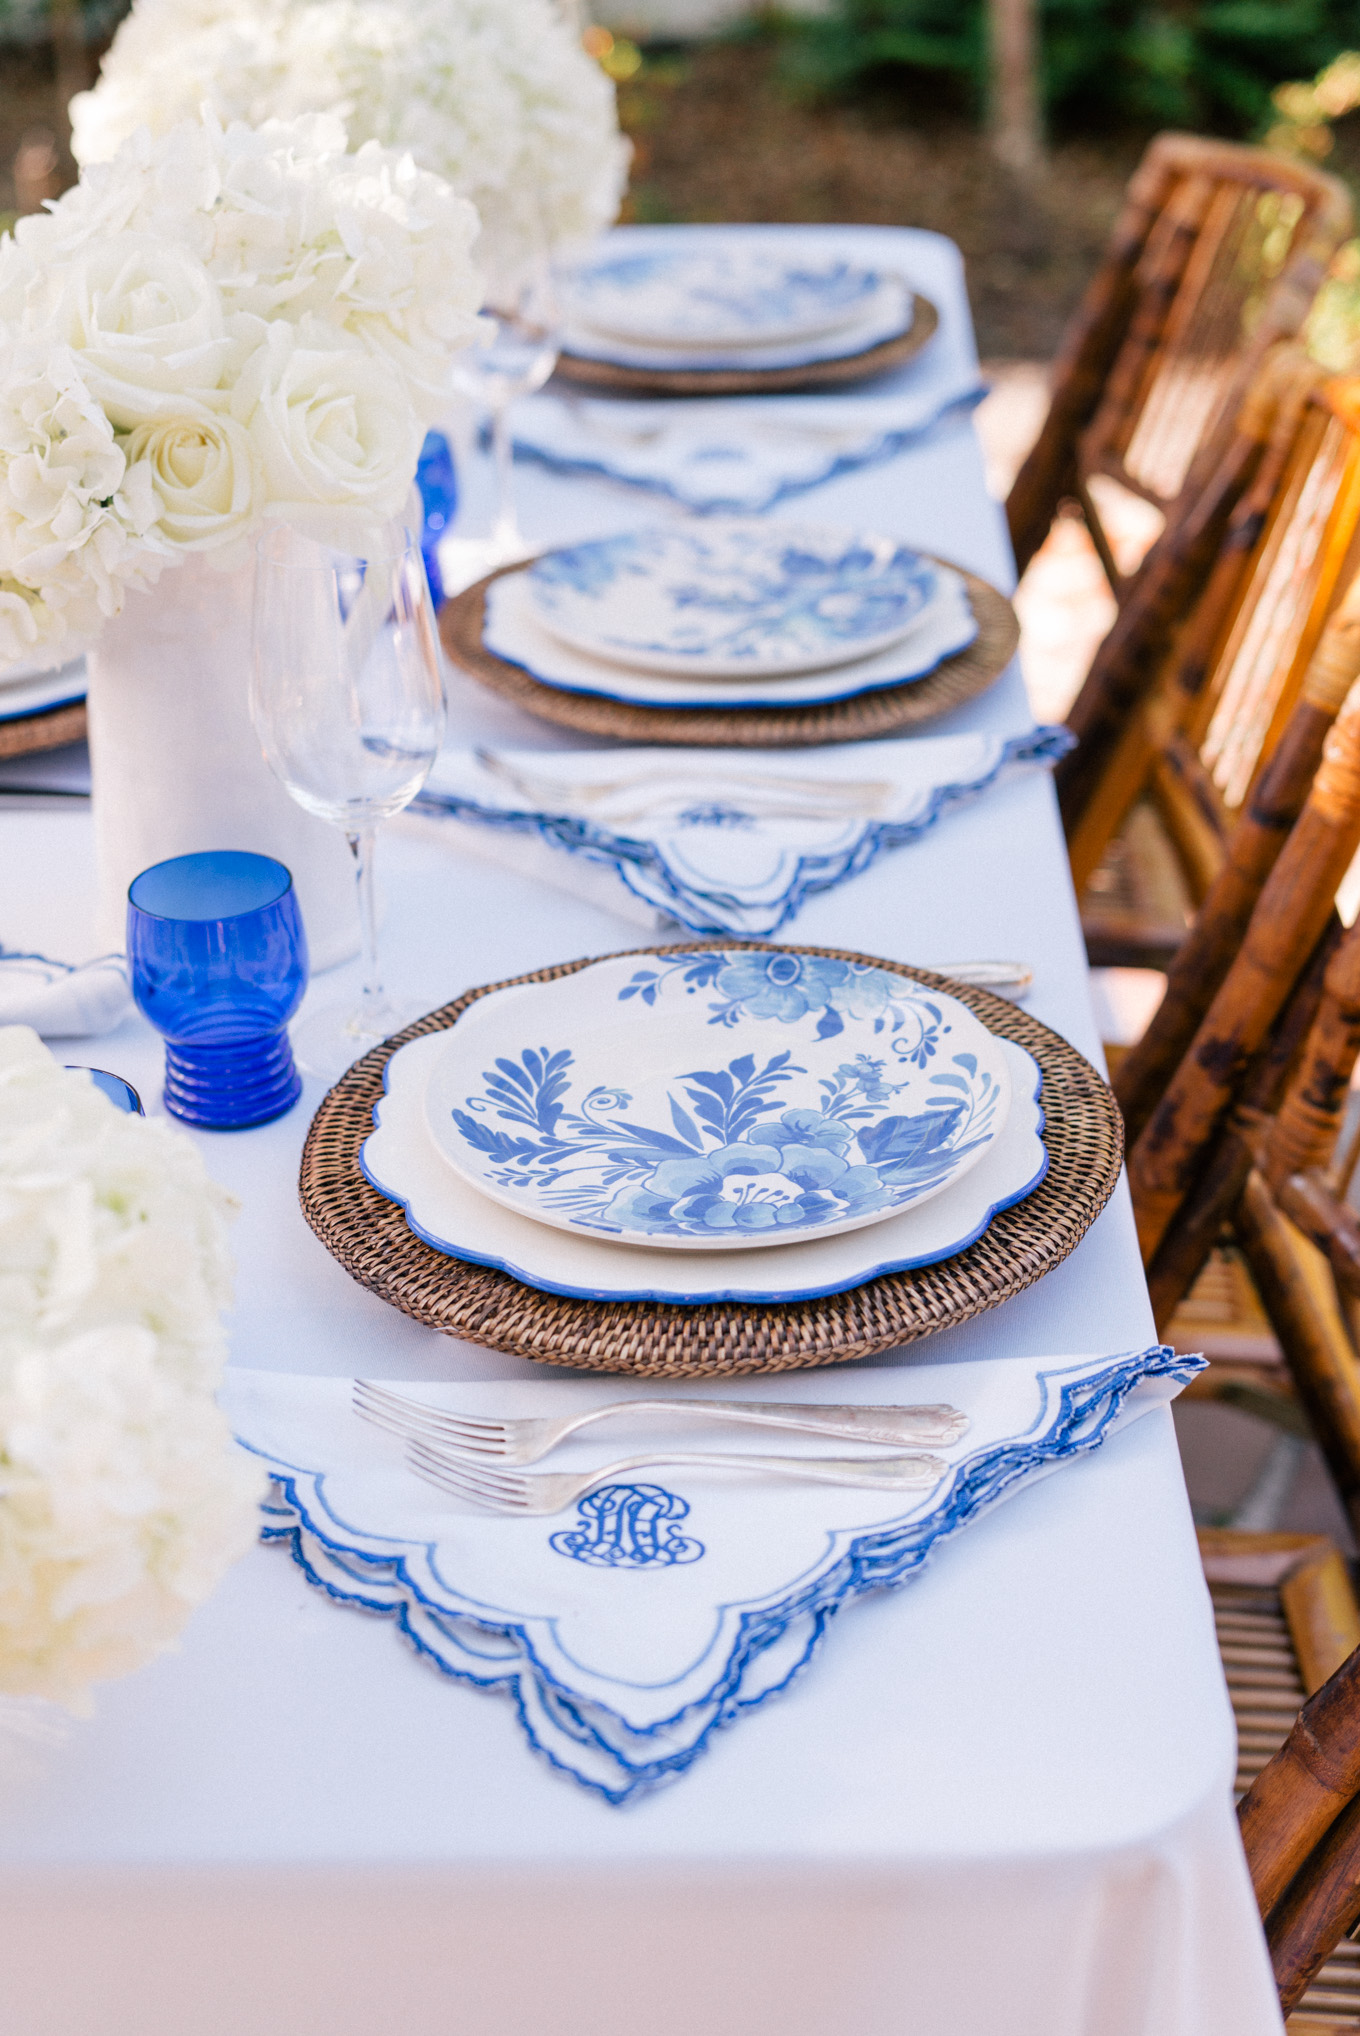 gmg-fourth-of-july-table-1009812